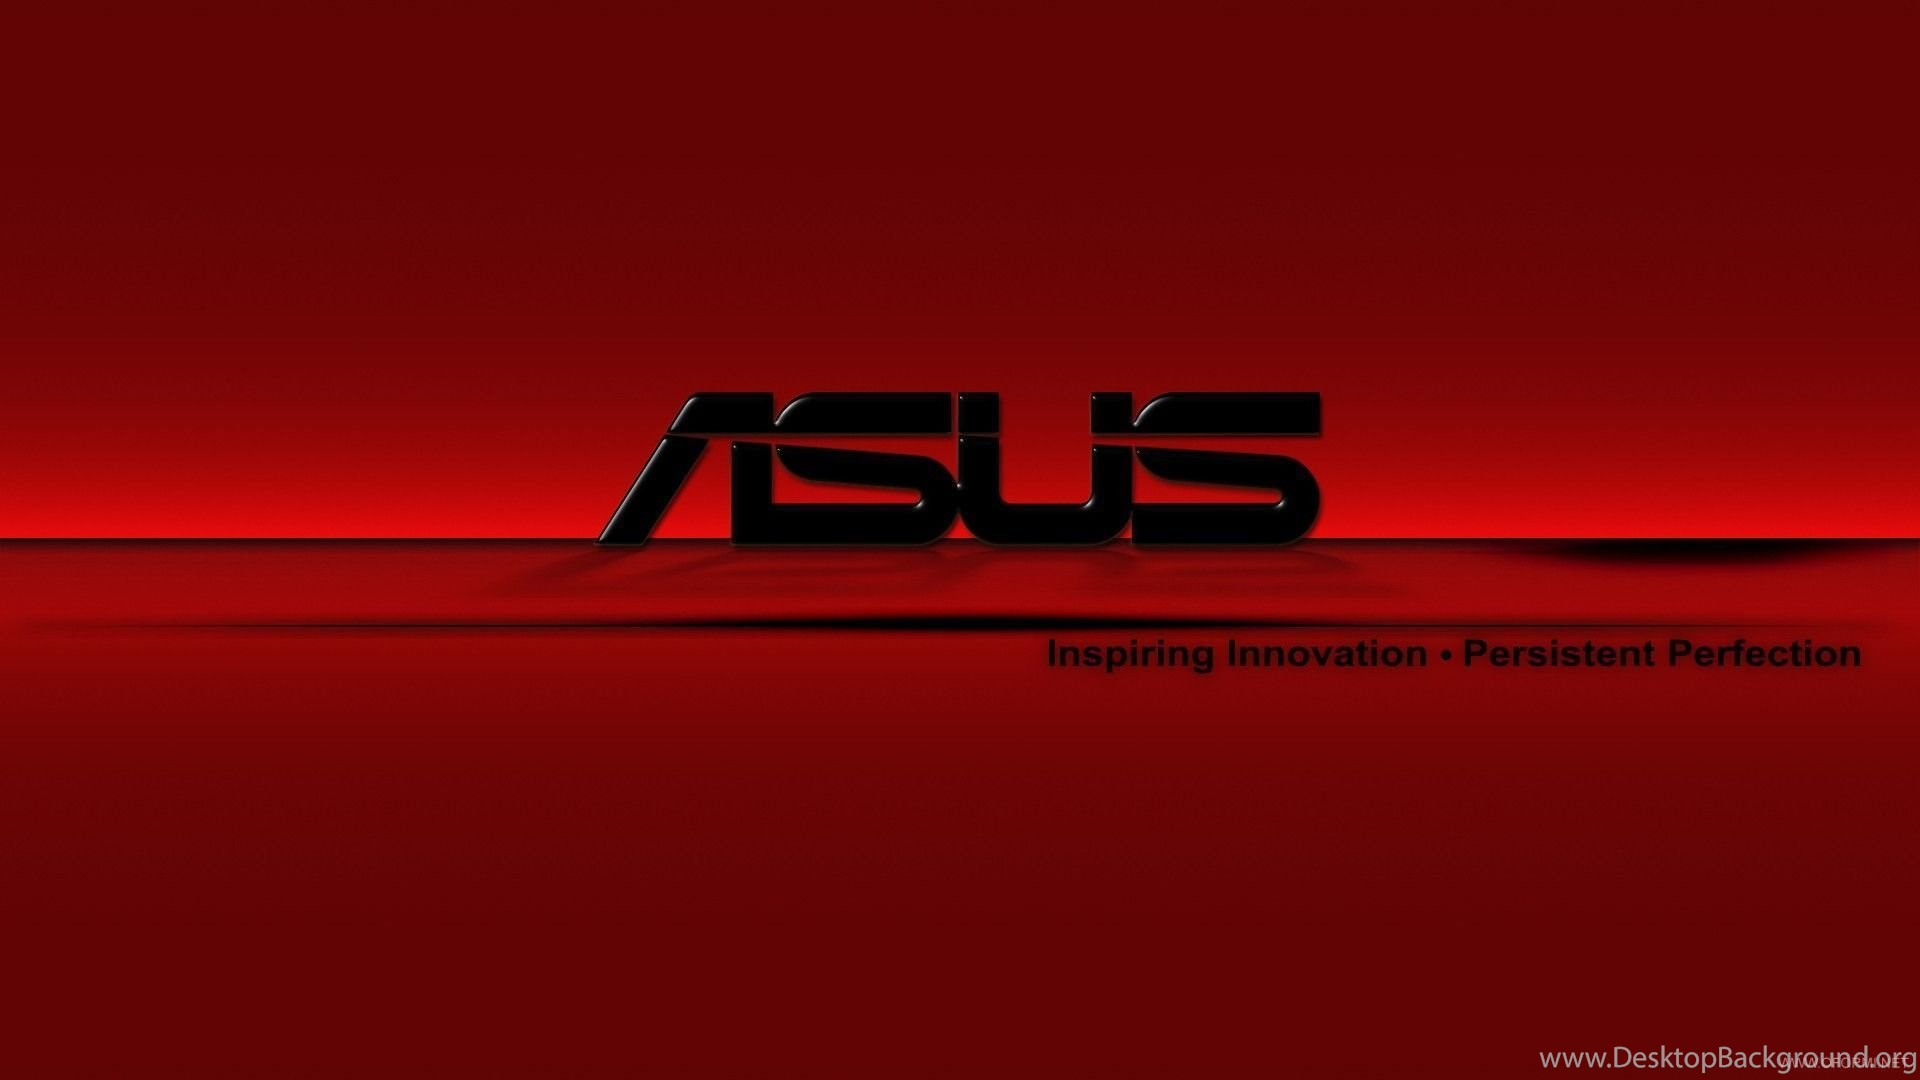 Red Asus Wallpaper: ASUS Logo On A Red Backgrounds Wallpapers And Images